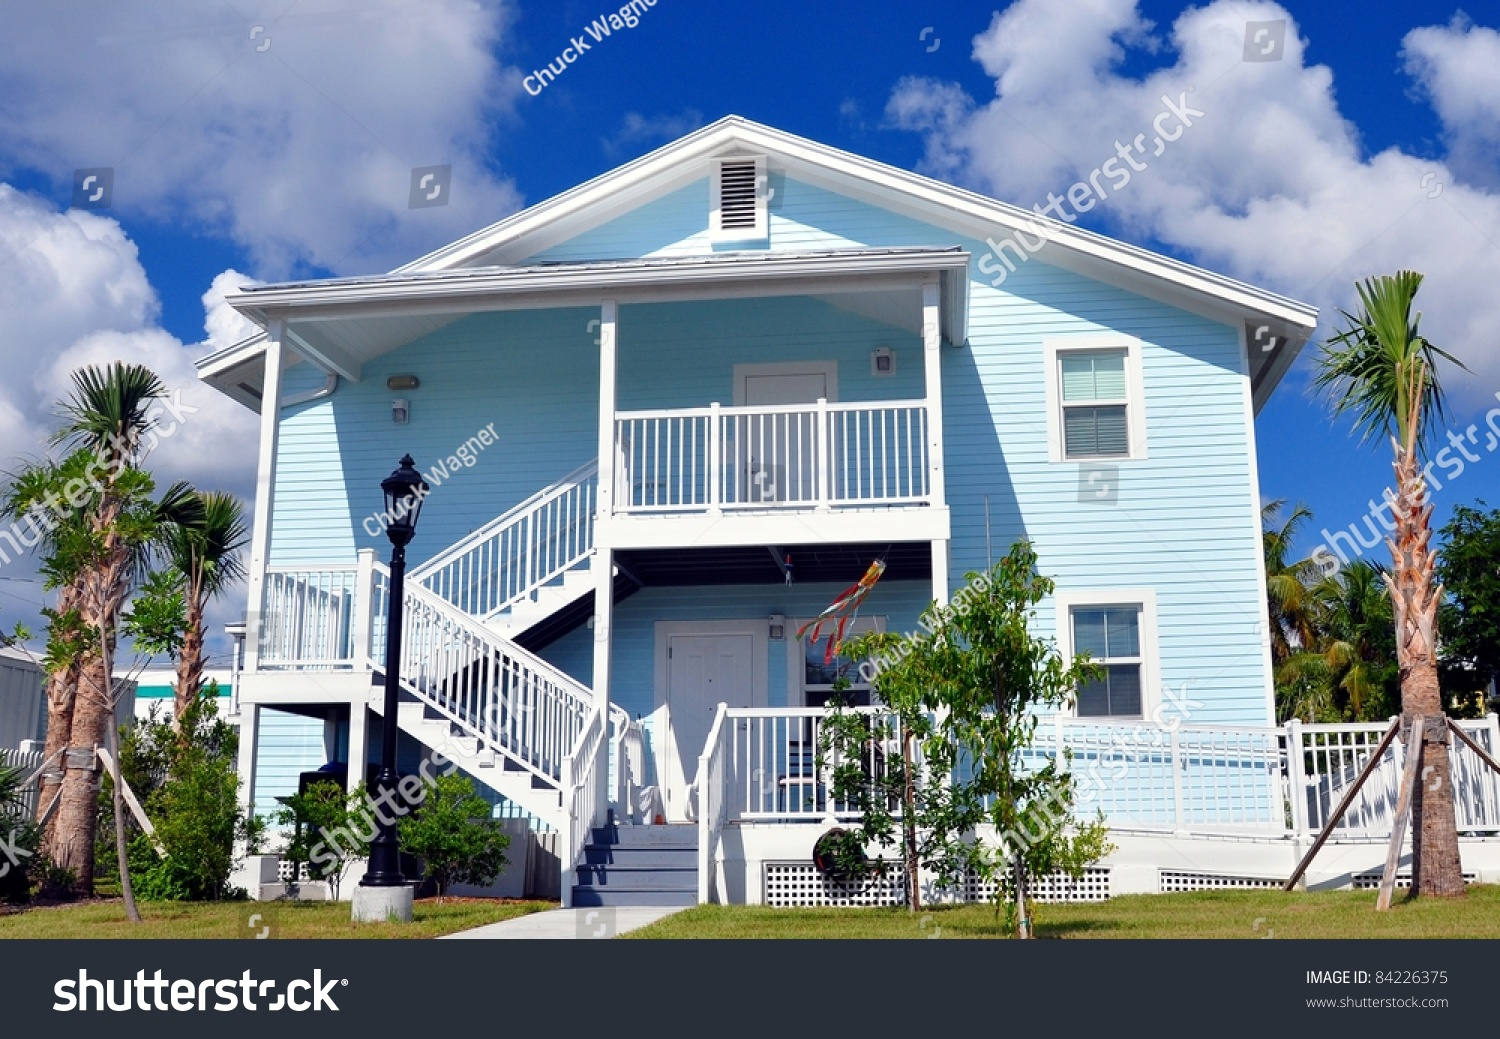 Key west beach house style architecture stock photo for Key west architecture style